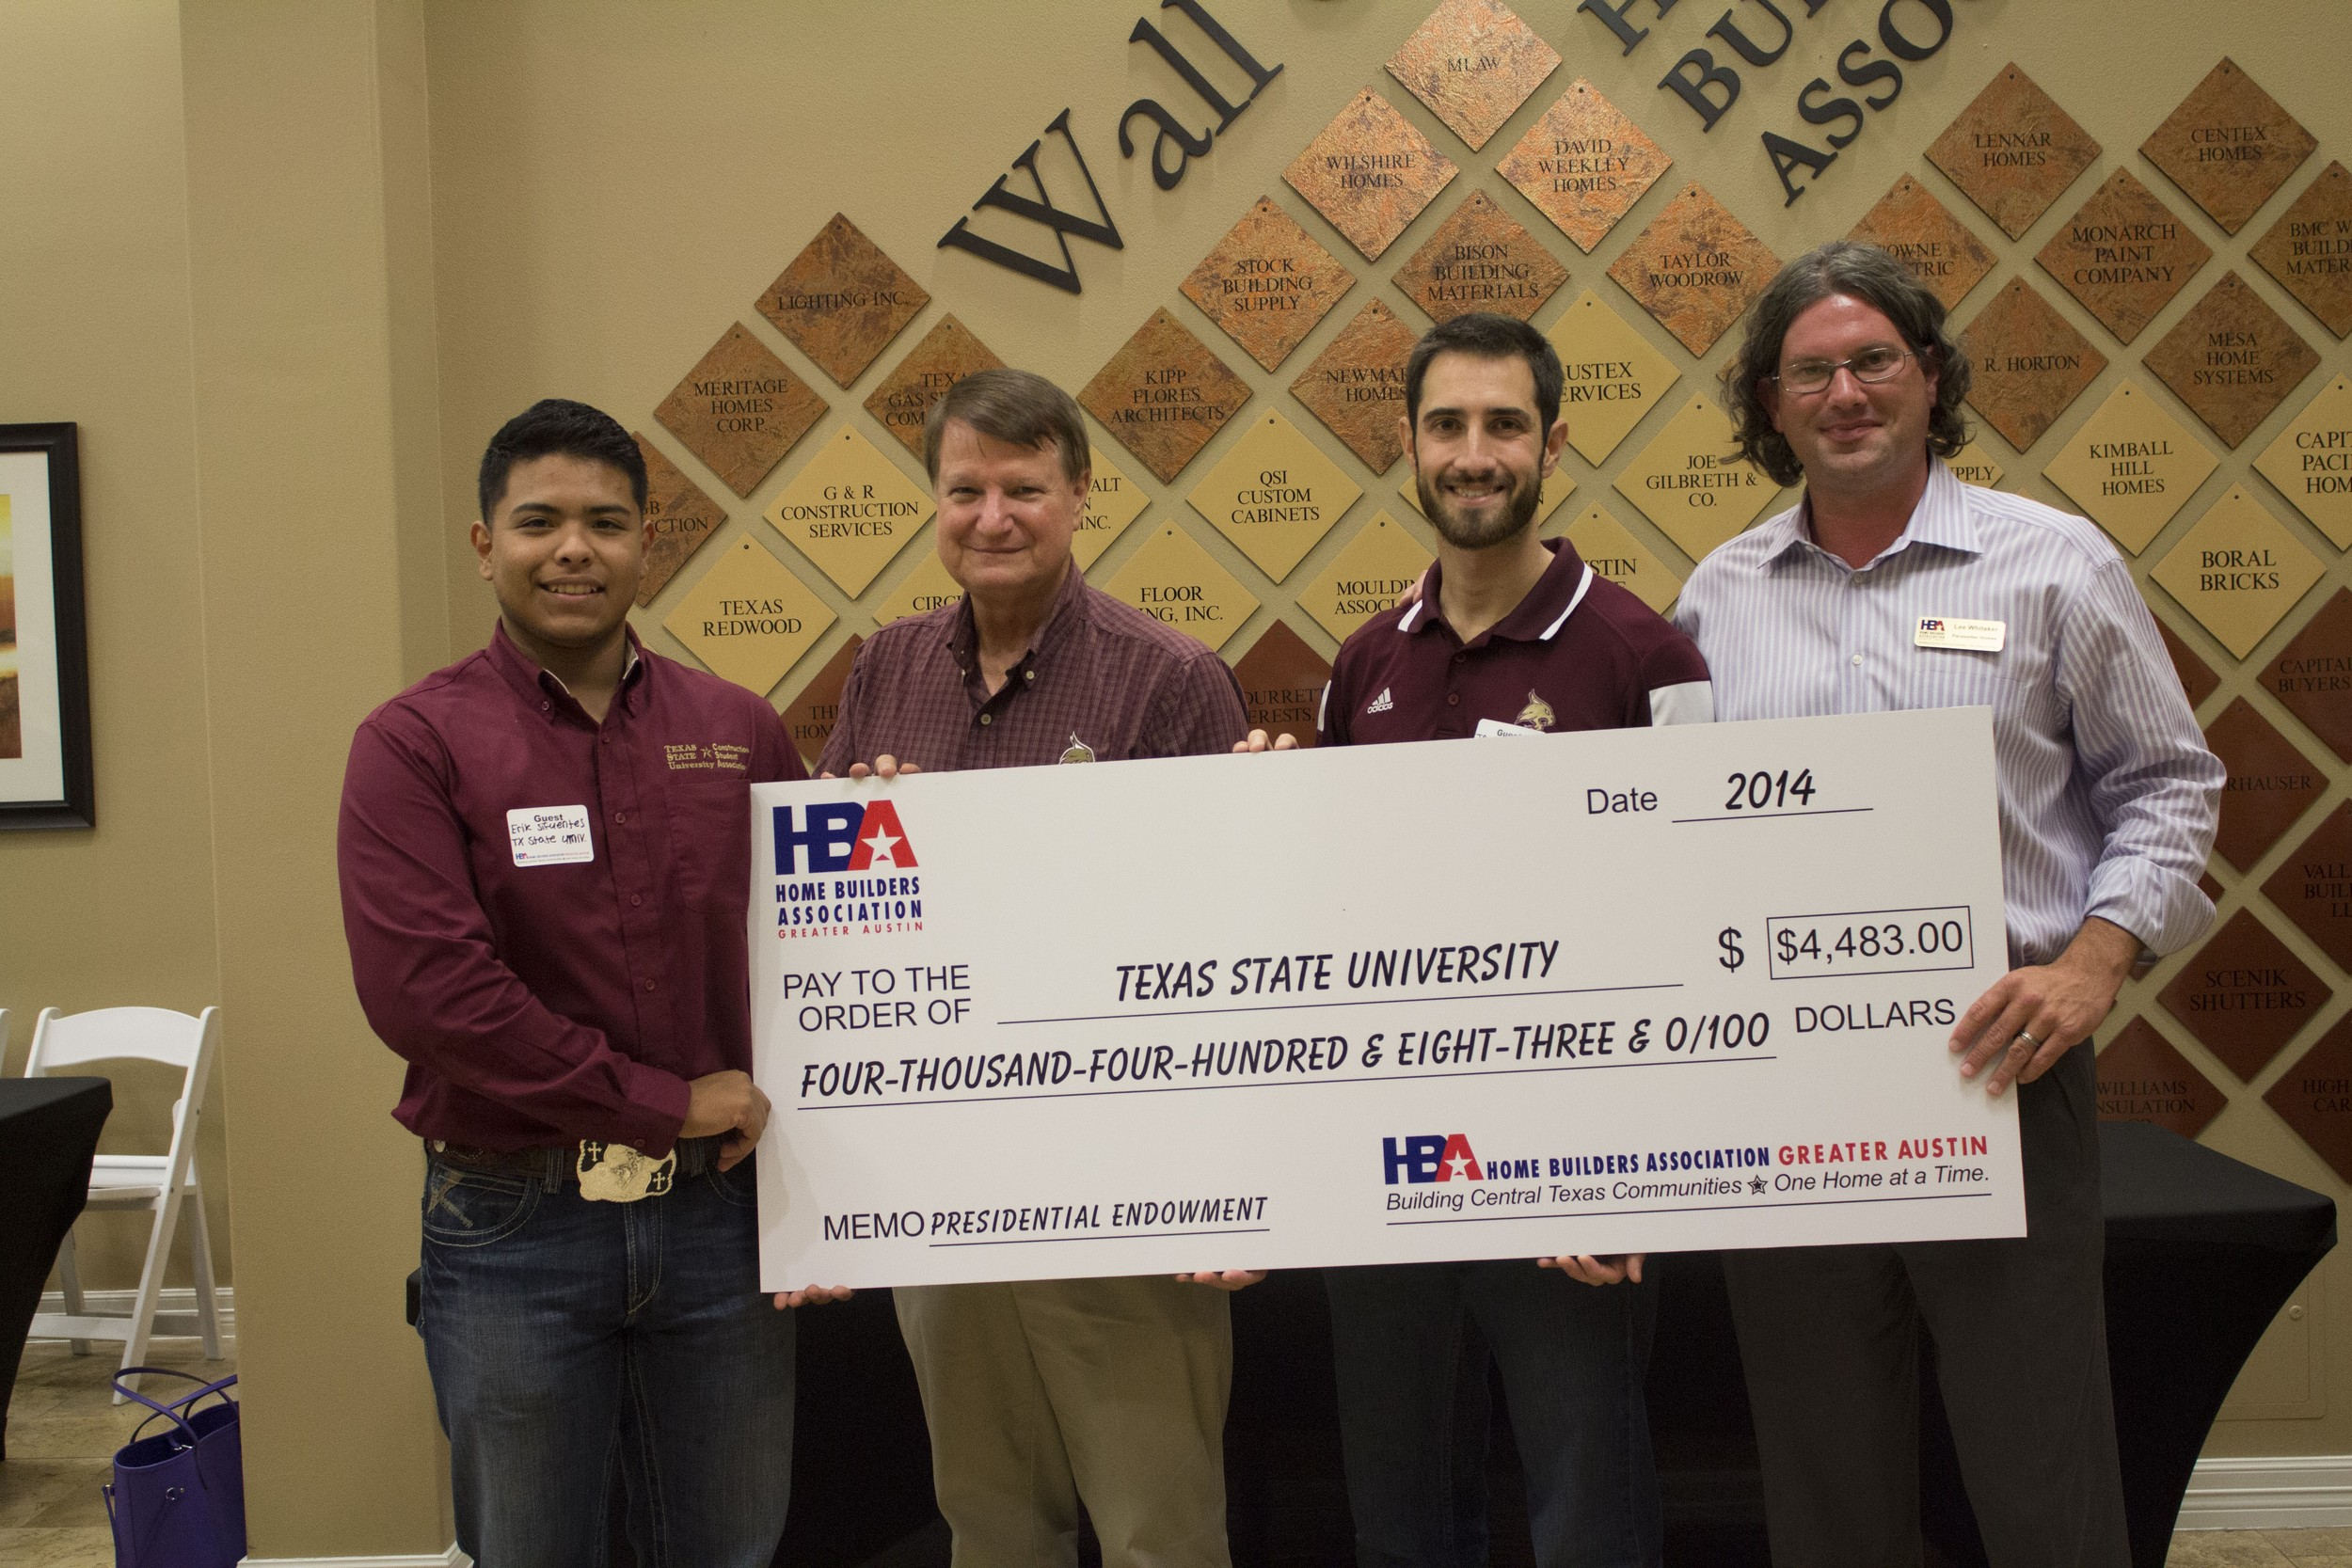 Lee Whitaker presents a check to Dr. Gary Winek (Construction Program Coordinator), Erik Sifuentes, and James Holmes on September 24th.